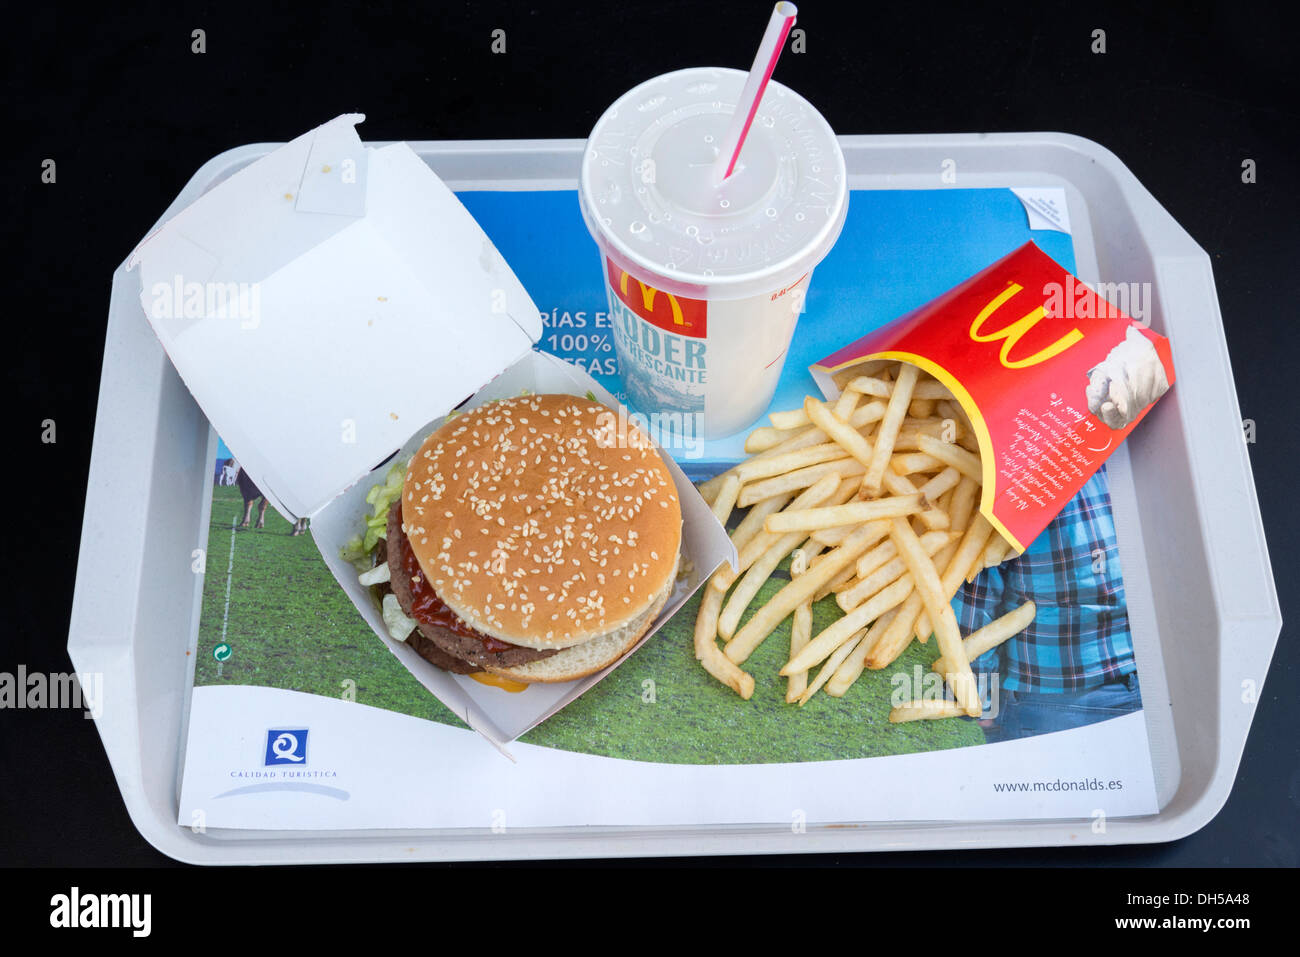 McDonald's meal of Big Mac, french fries and a soft drink - Stock Image